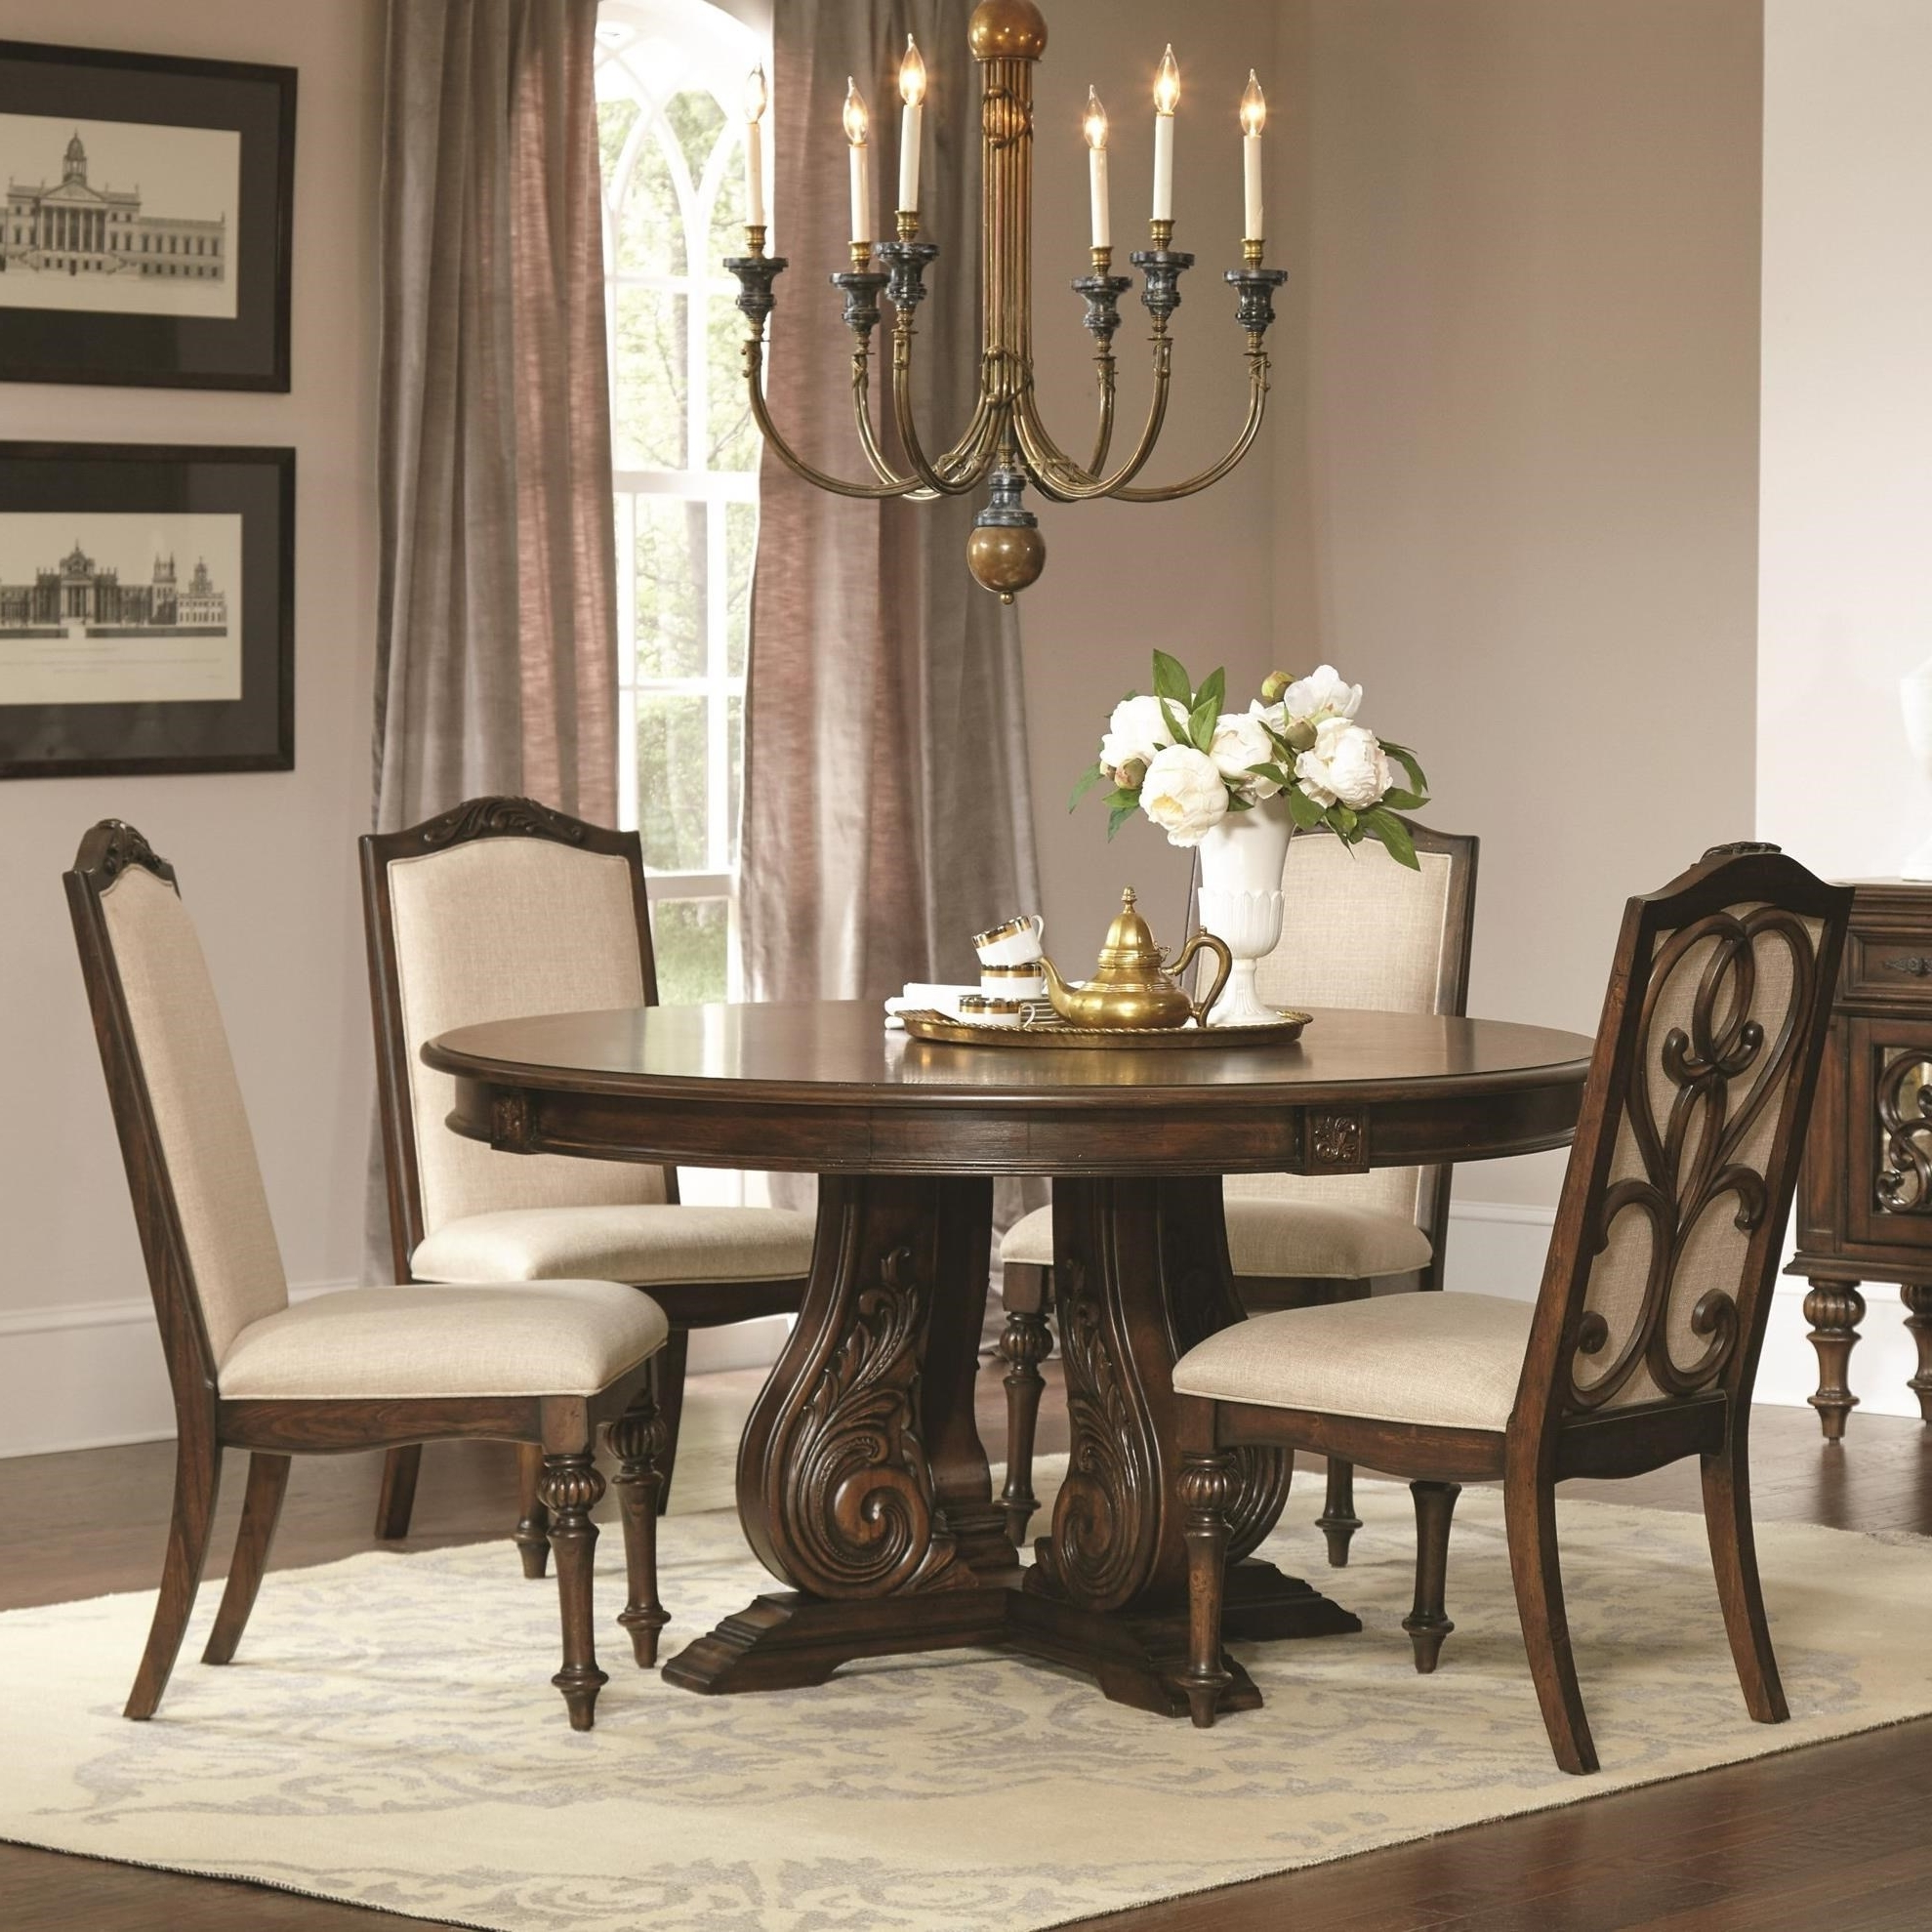 Jaxon 5 Piece Extension Counter Sets With Wood Stools Within Well Known Coaster Ilana Traditional 5 Piece Table And Chair Set With Pedestal (Gallery 22 of 25)